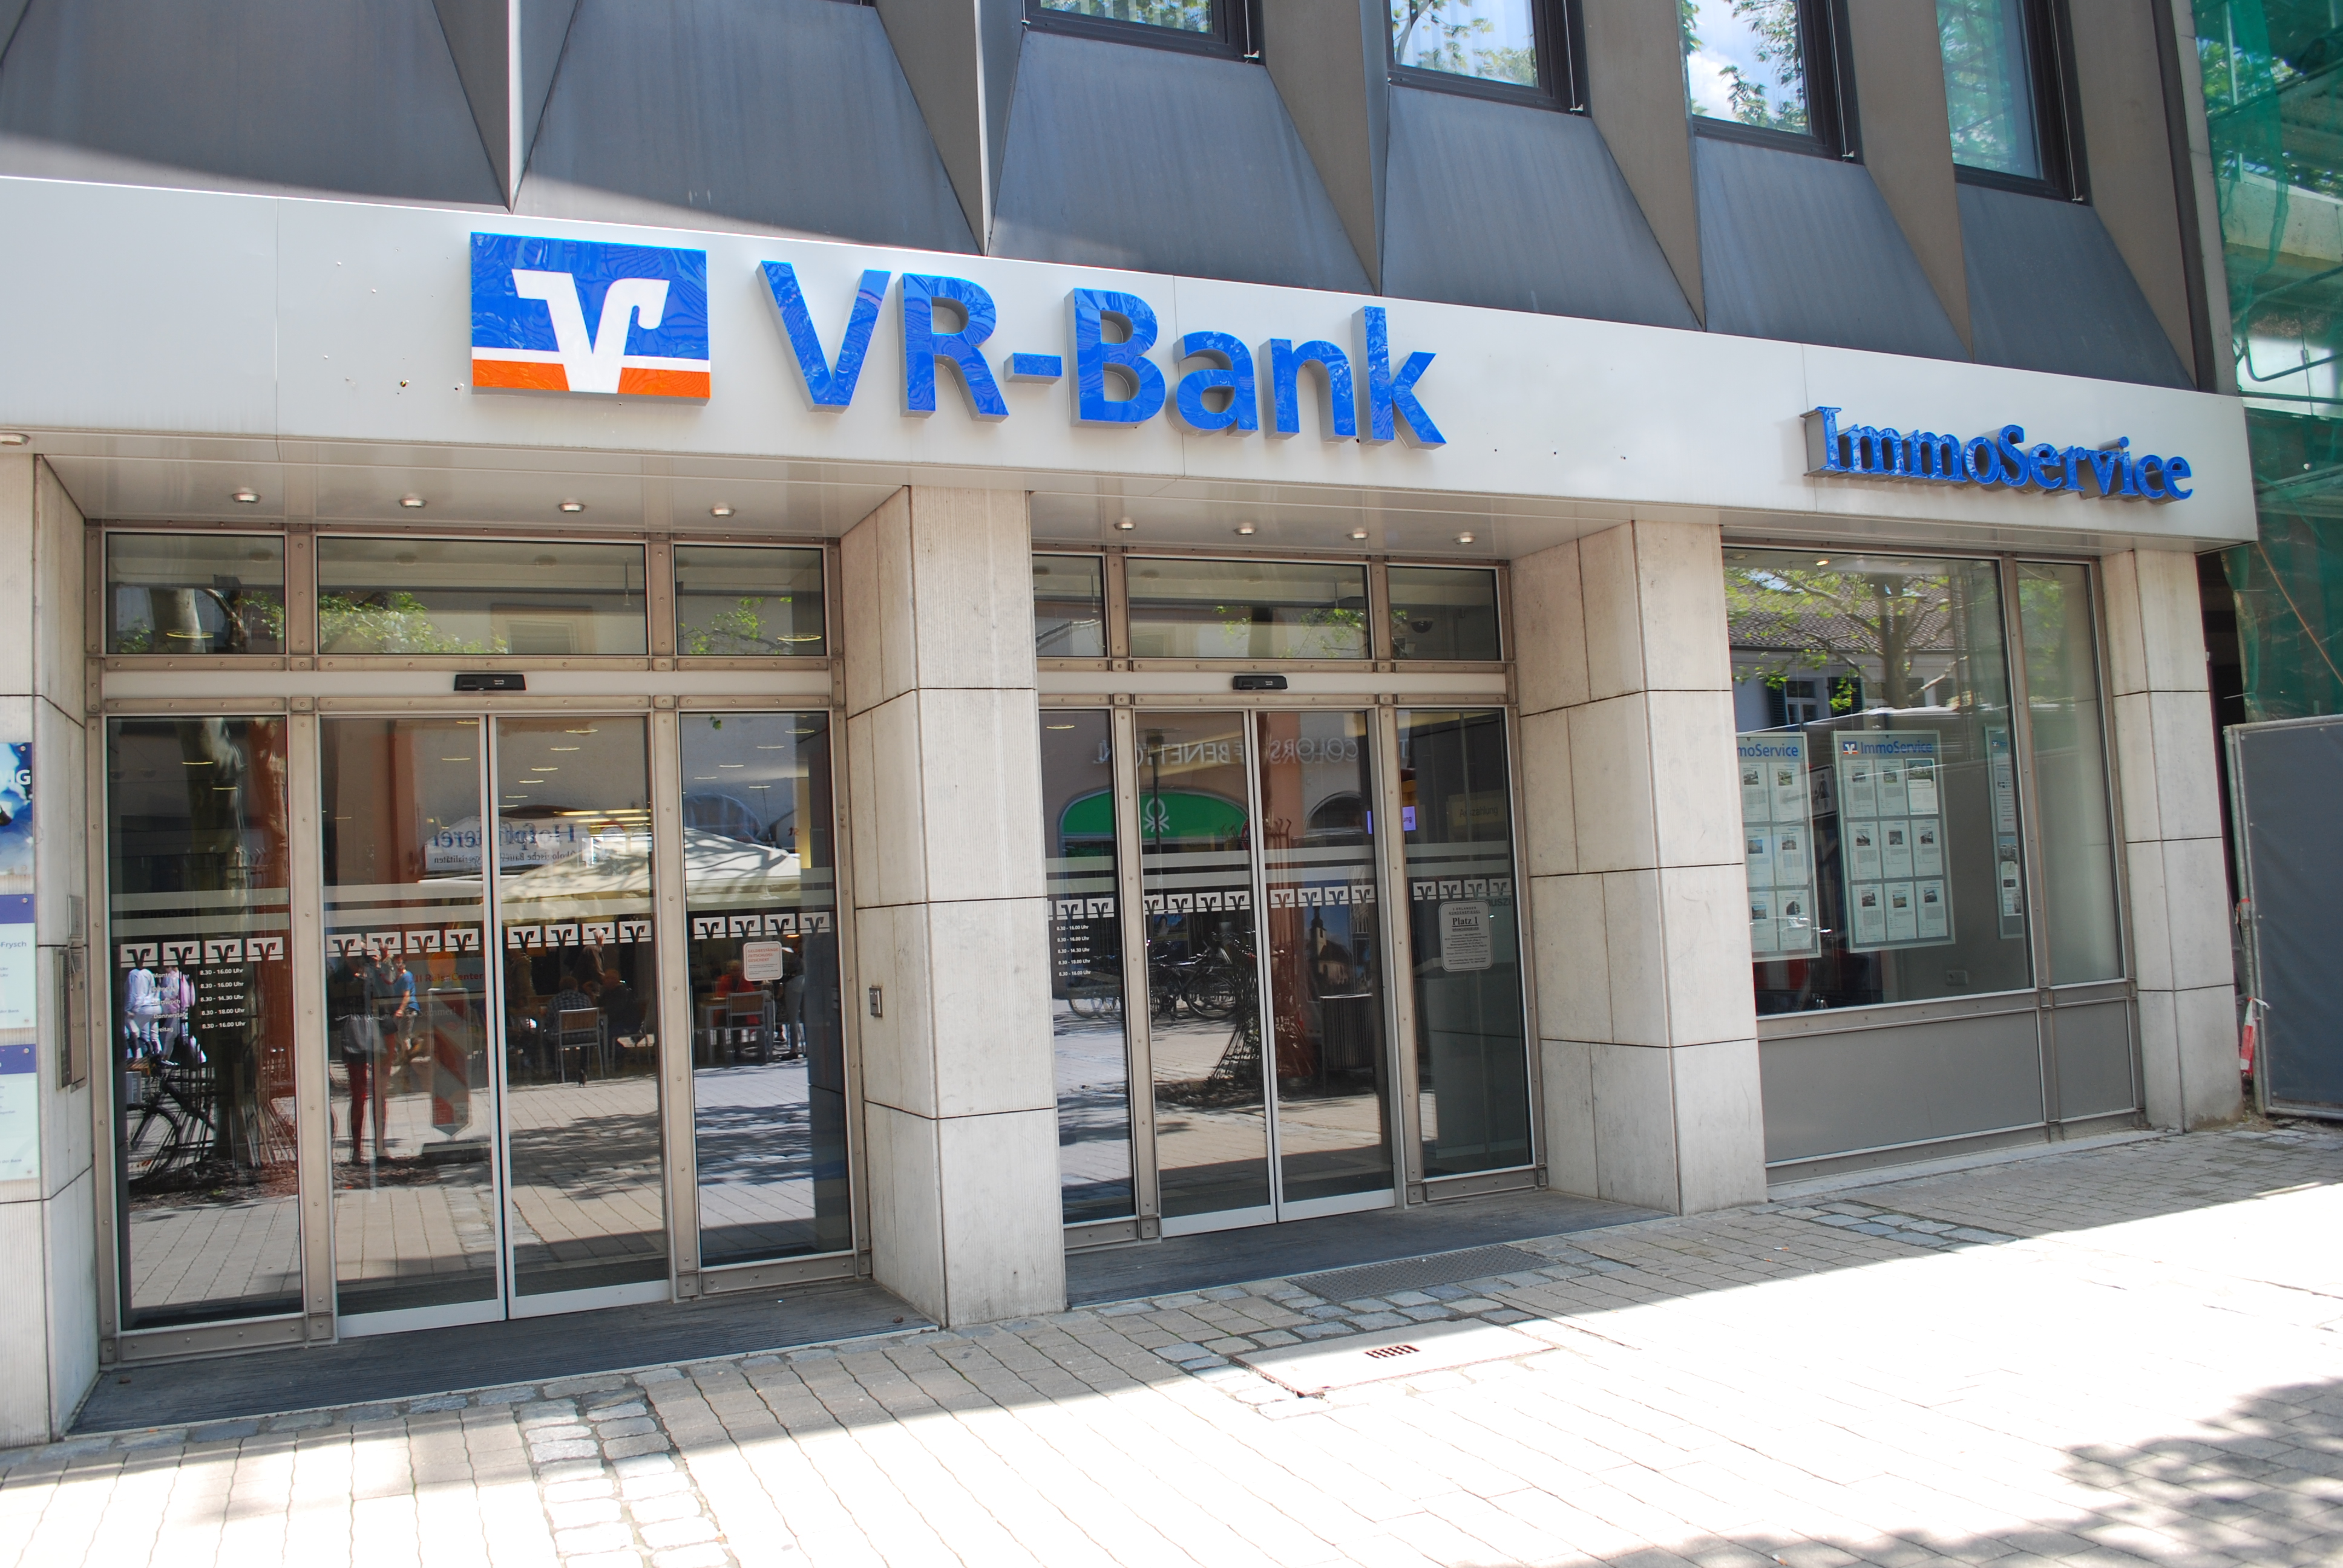 VR-Bank ImmoService